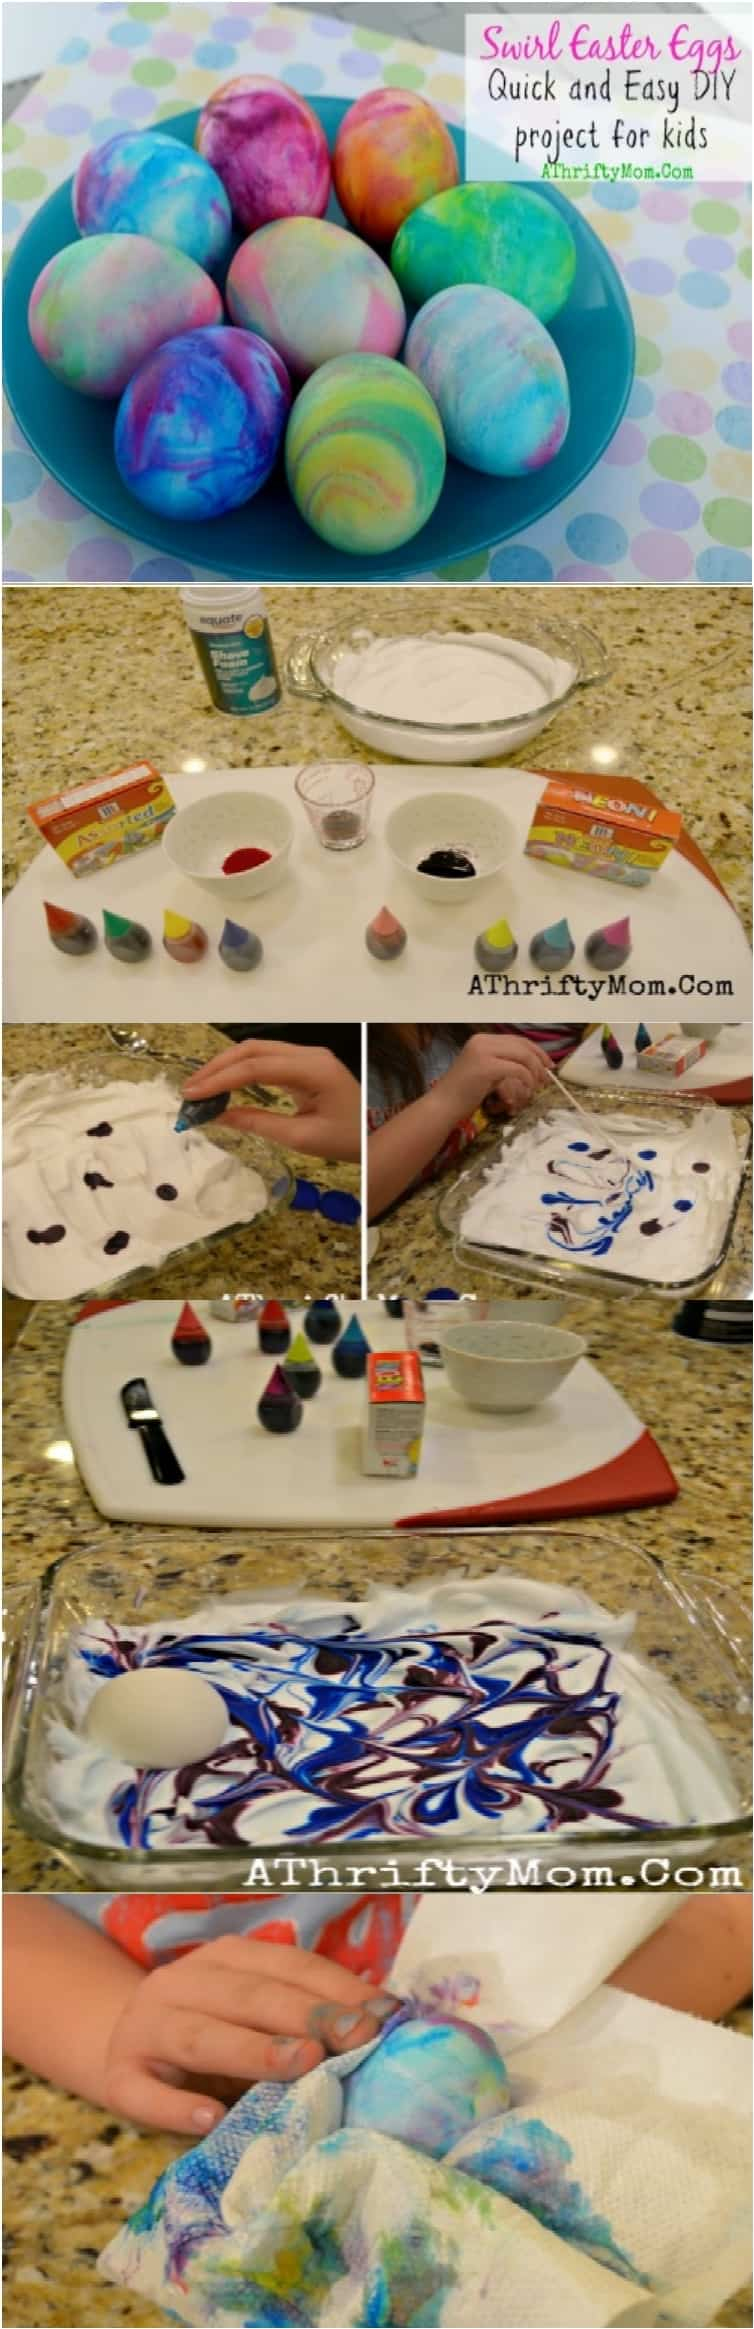 24 Creative Ways to Dye Easter Eggs